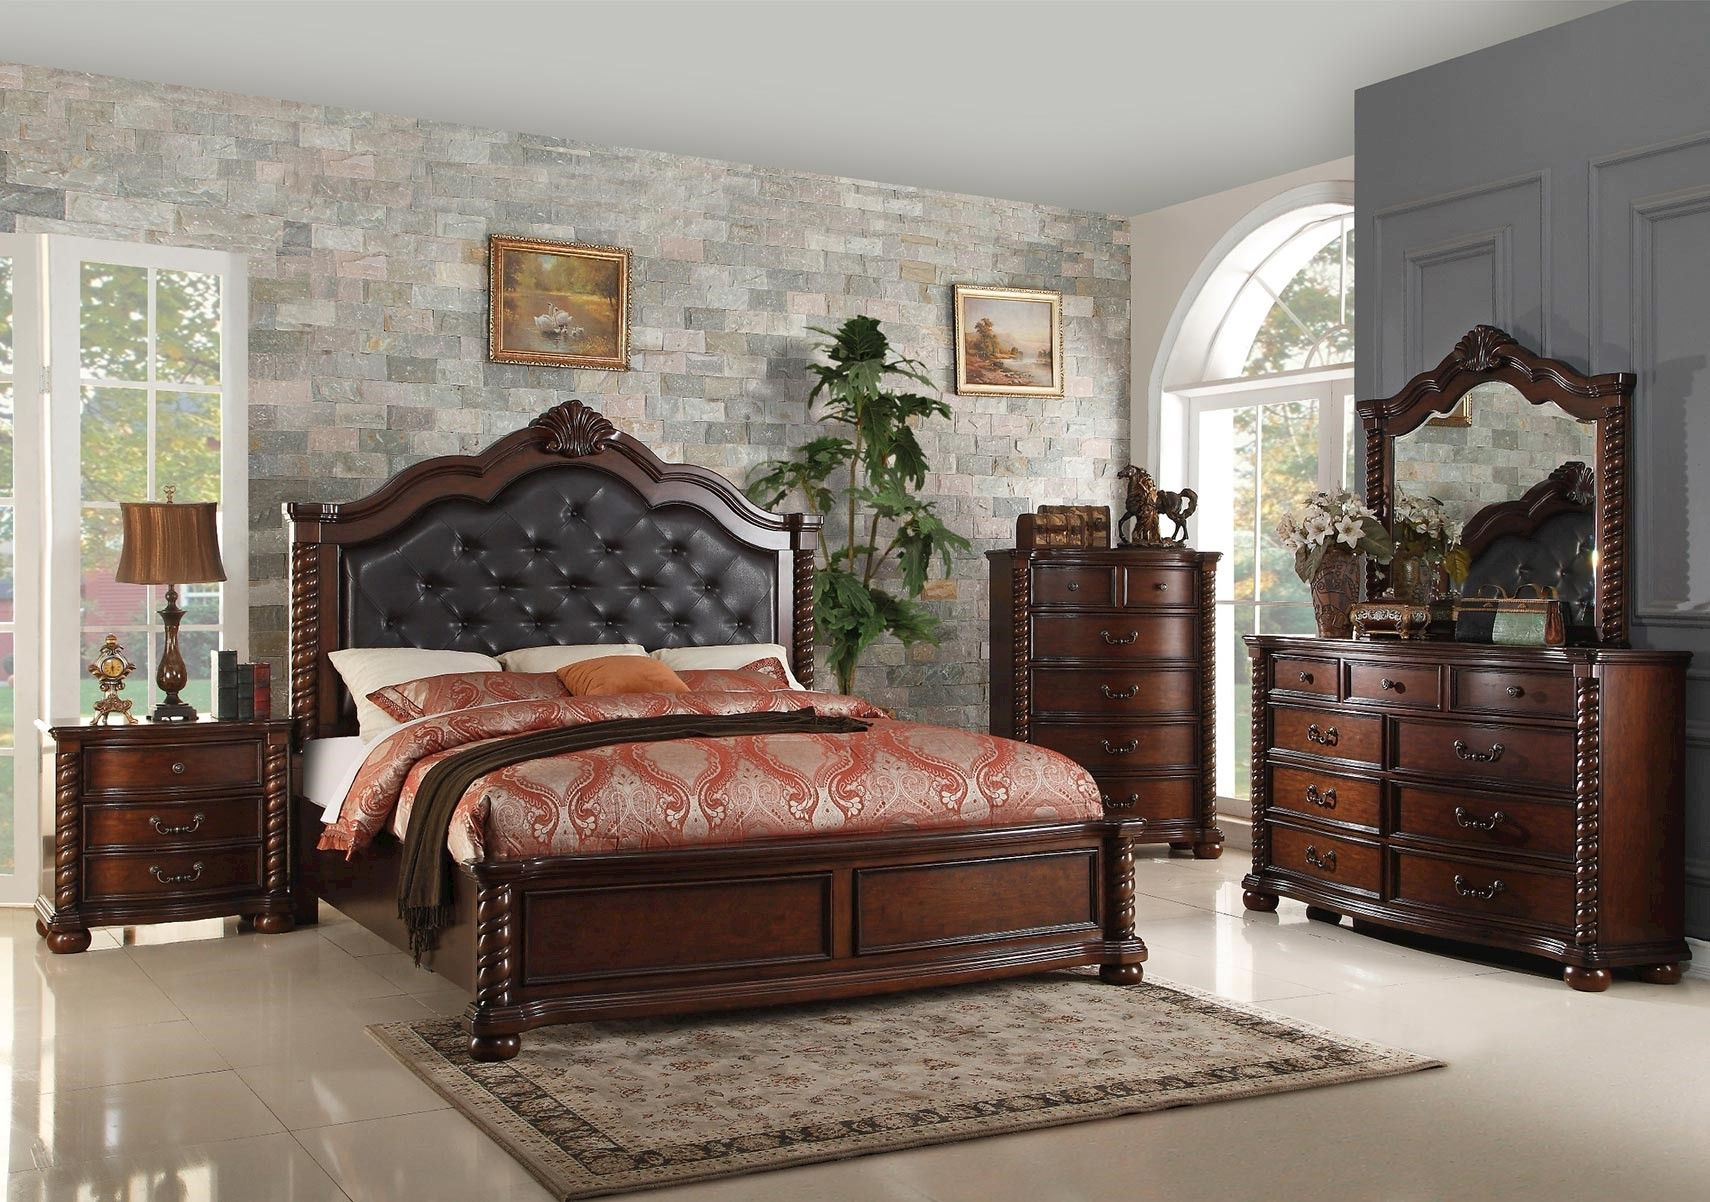 Lacks Montarosa 4 Pc Queen Bedroom Set Bedroom Sets Queen Bedroom Furniture Sets